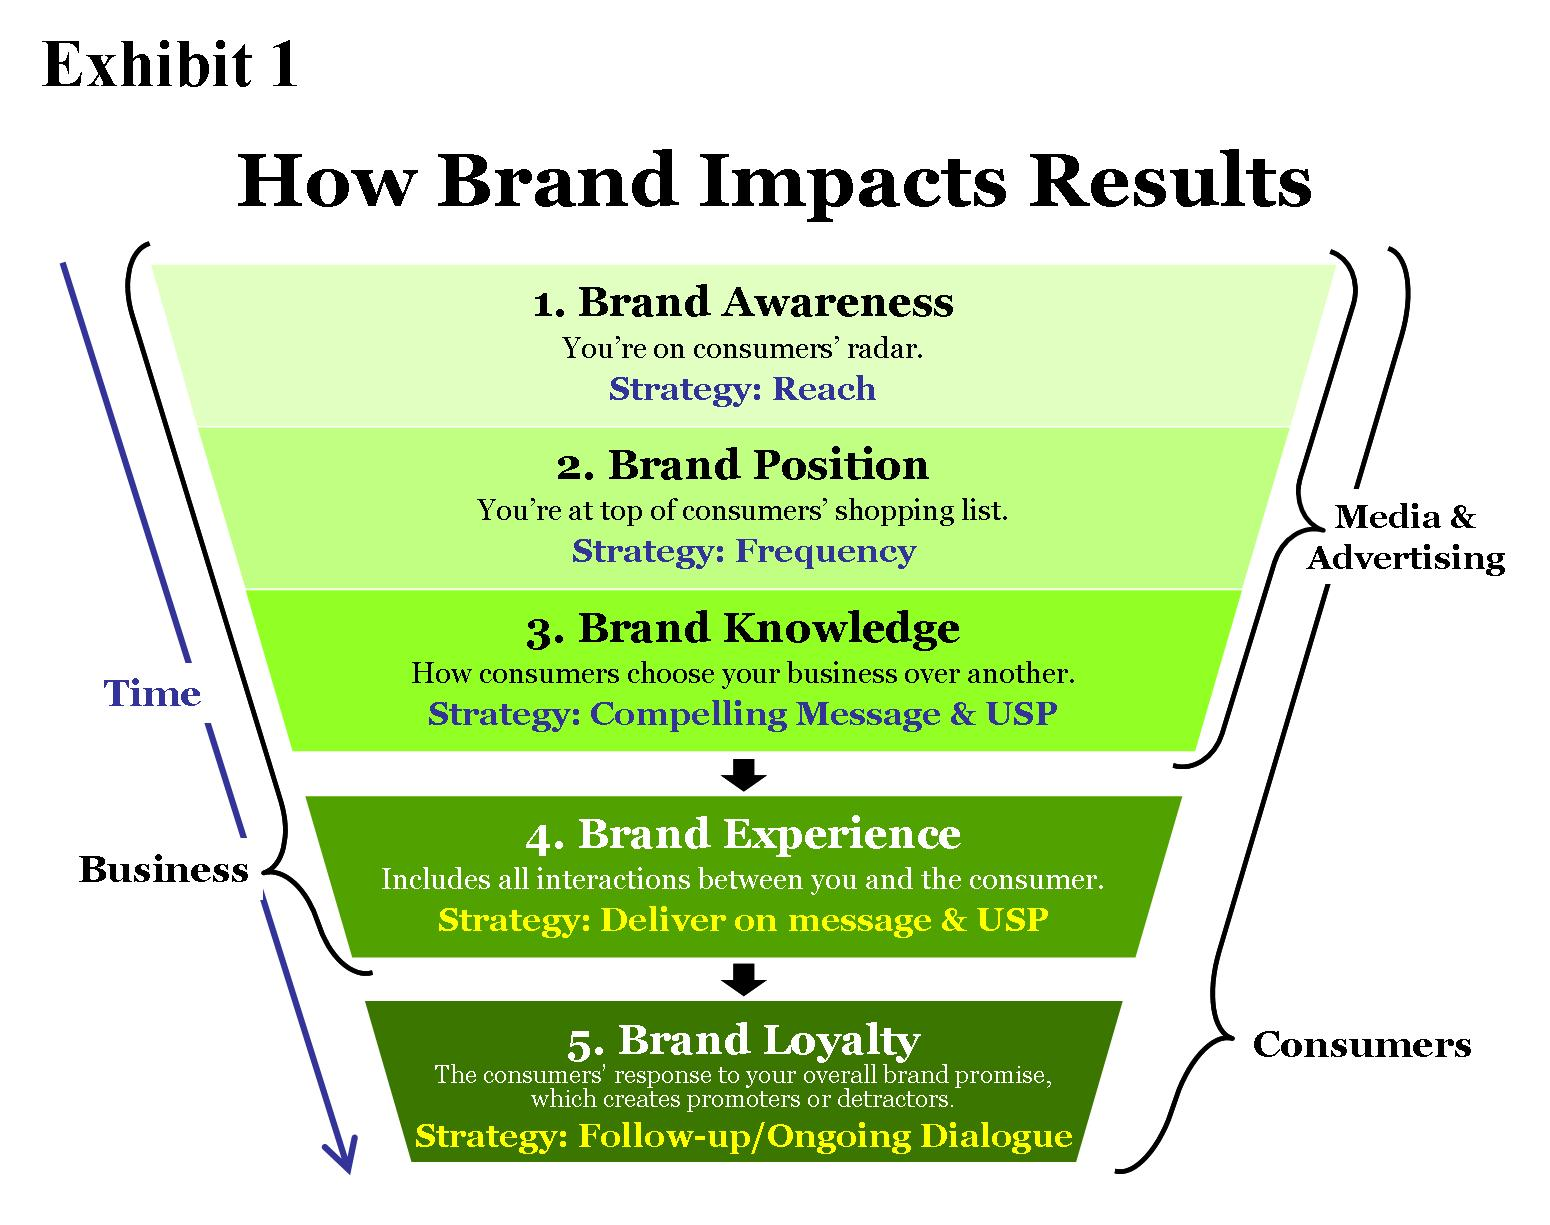 note on measuring brand awareness brand image Brand loyalty is just one part of your overall brand equity, which is the extent of your brand's power as determined by consumers' positive or negative knowledge, perceptions, and experiences with your brand.